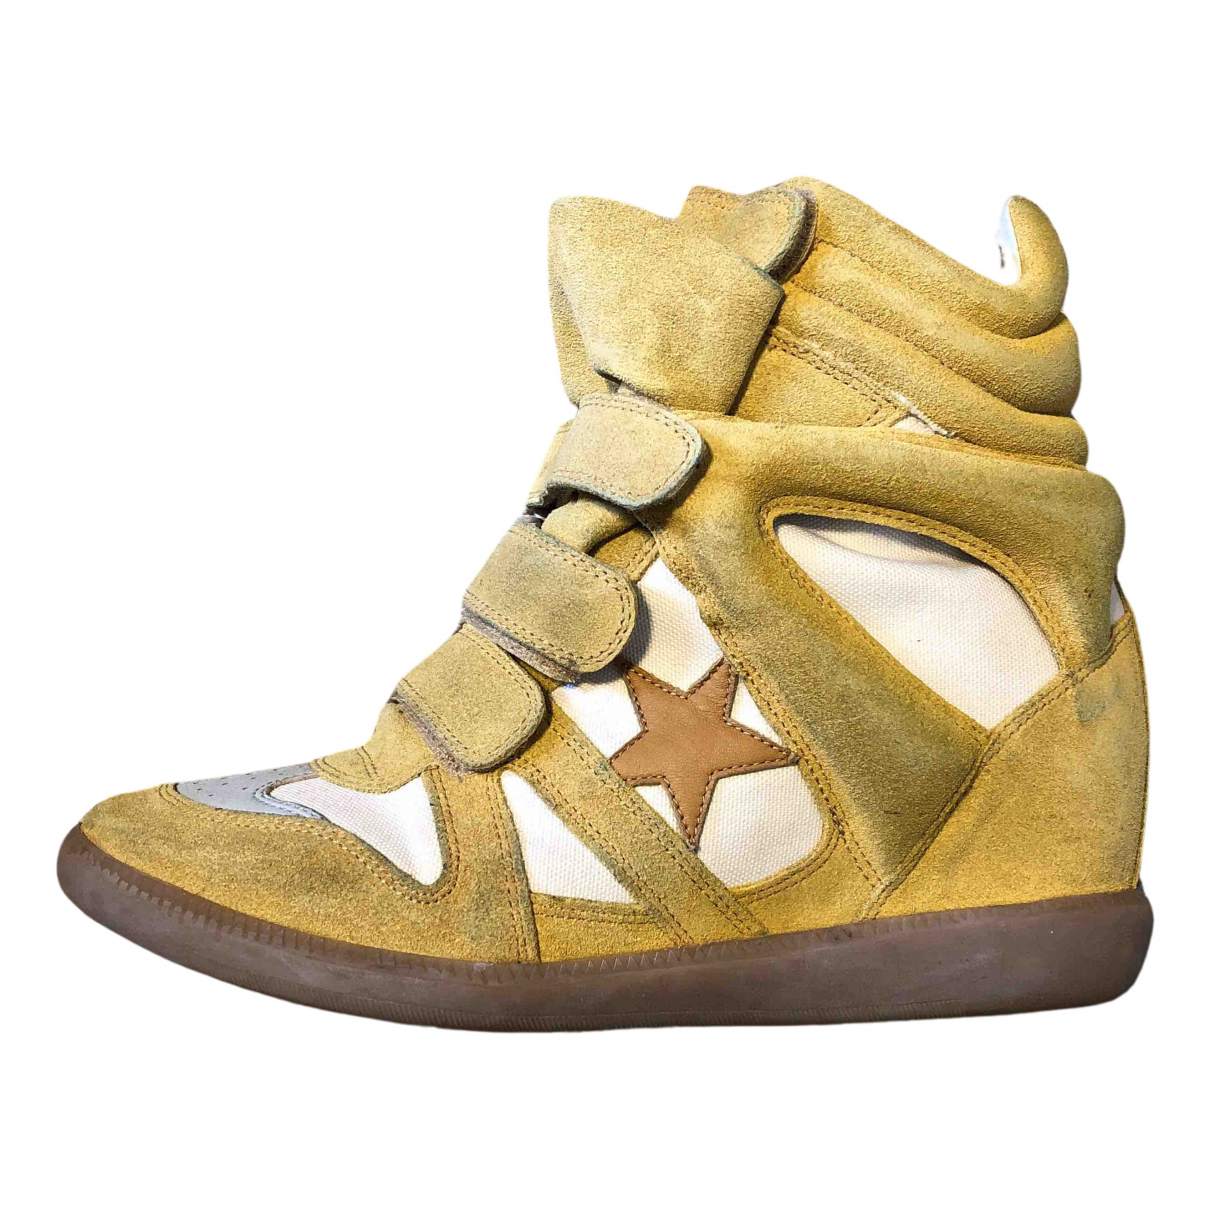 Isabel Marant Bayley Yellow Suede Trainers for Women 41 EU